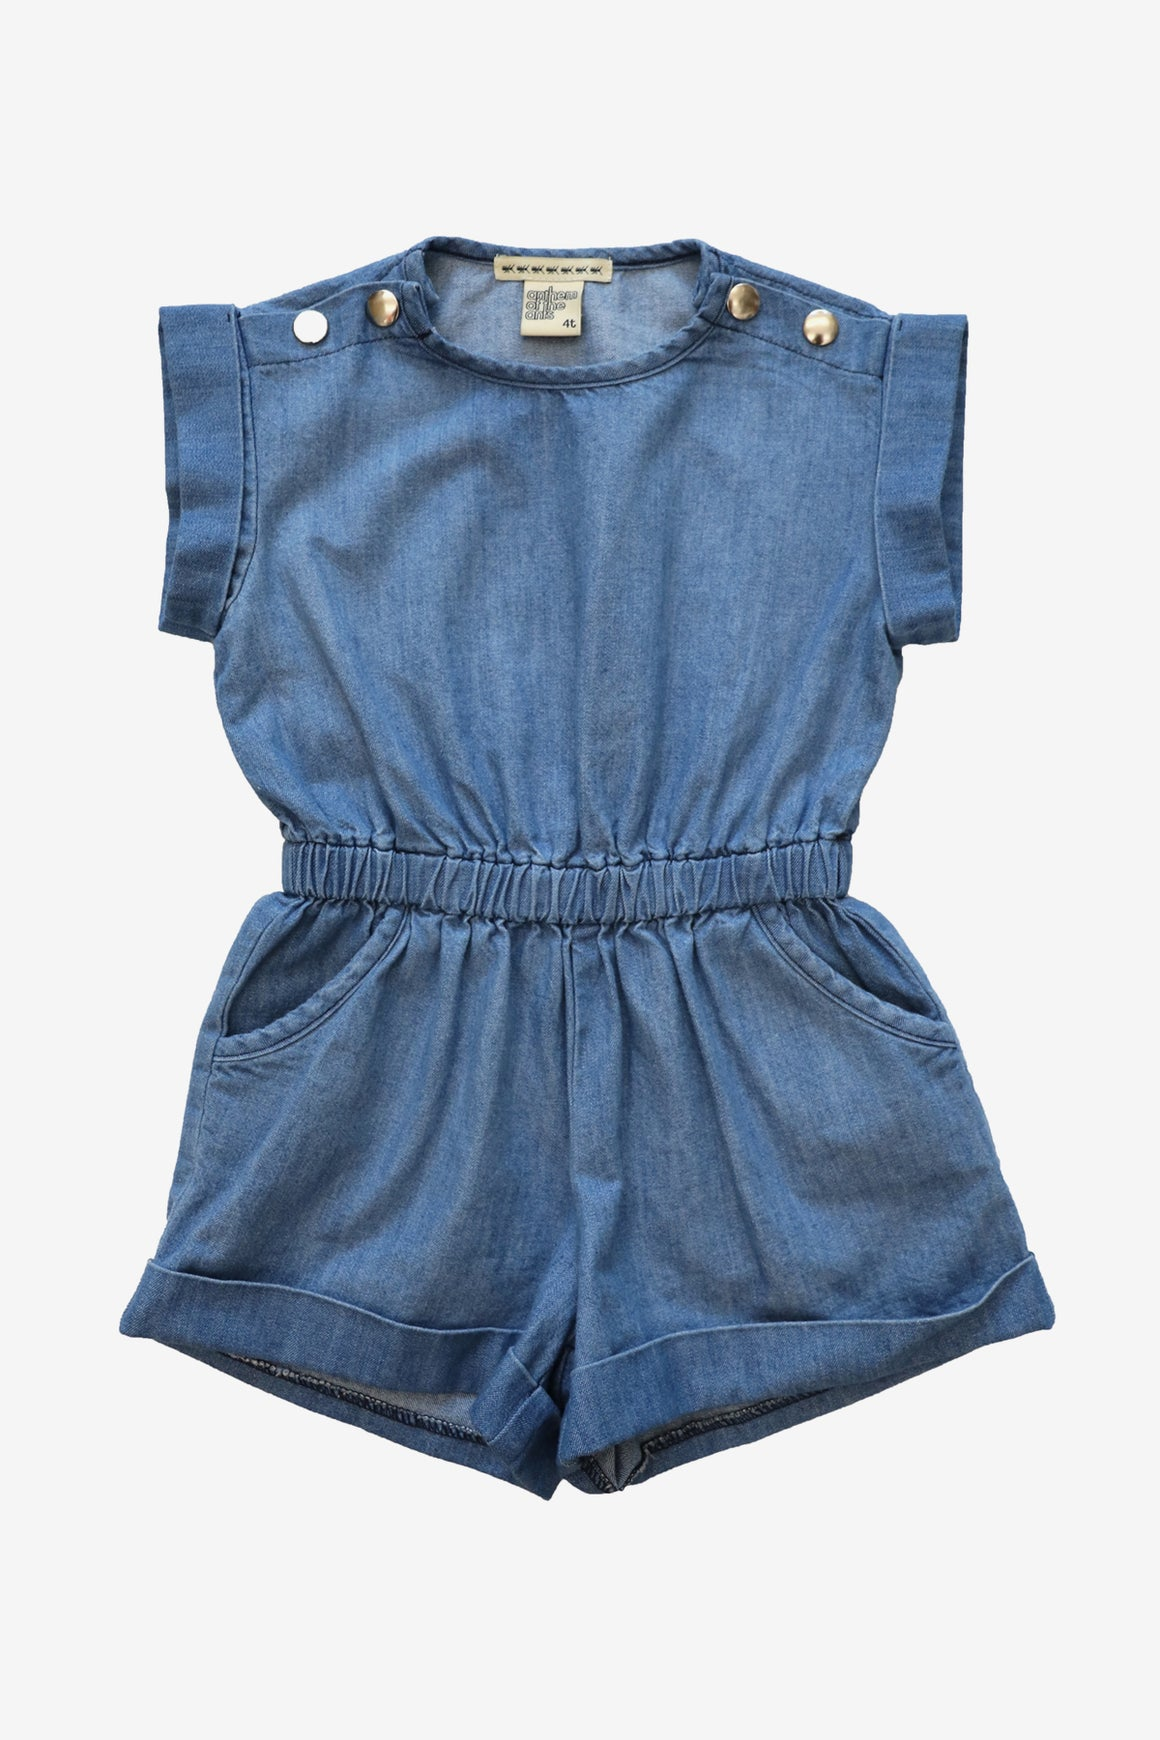 Anthem of the Ants Coco Camp Romper